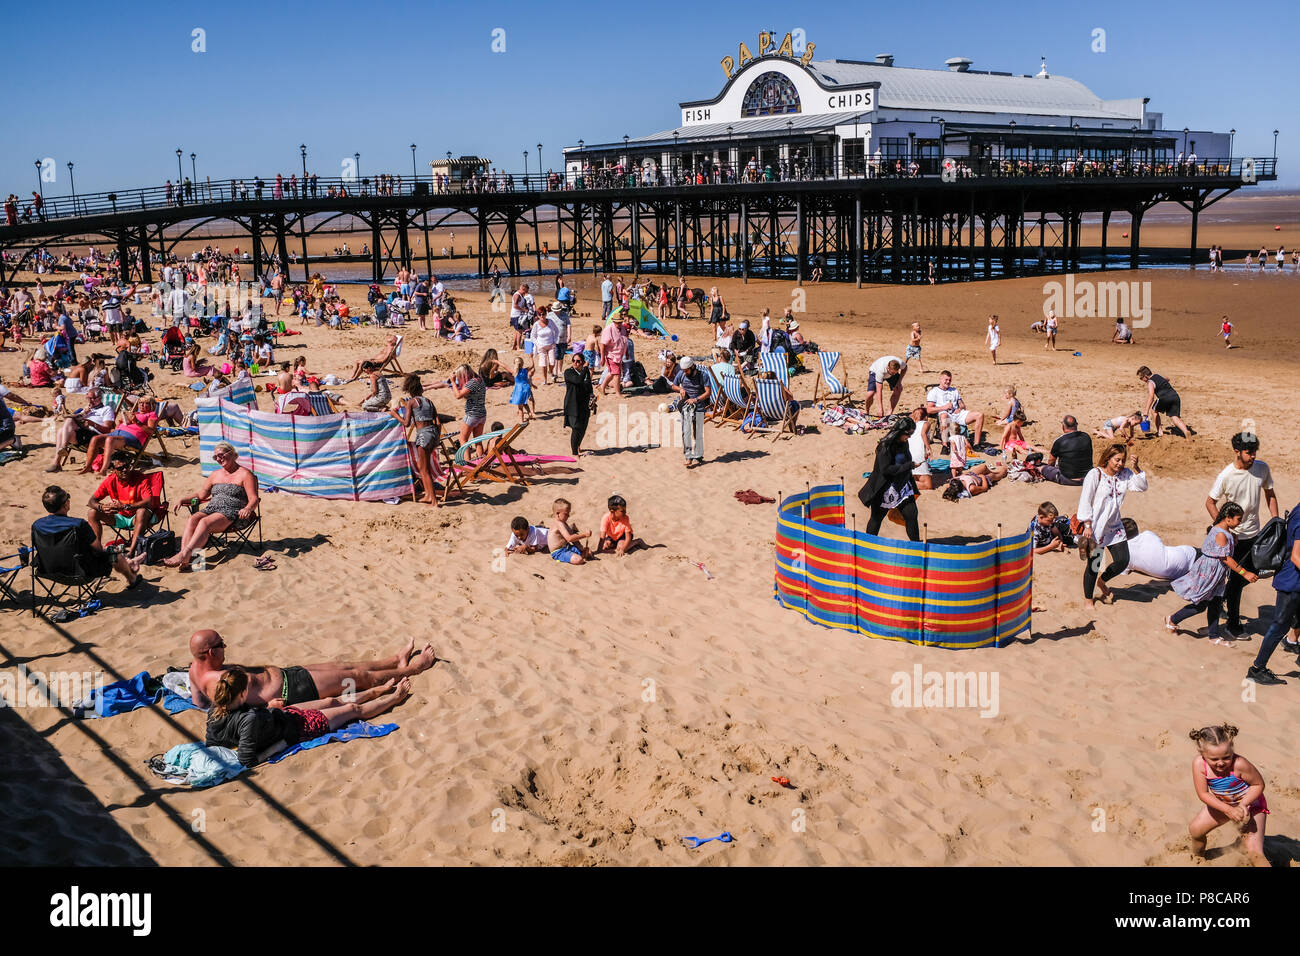 Cleethorpes seafront with tourists close to the pier during Armed forces event weekend. Cleethorpes England UK - Stock Image